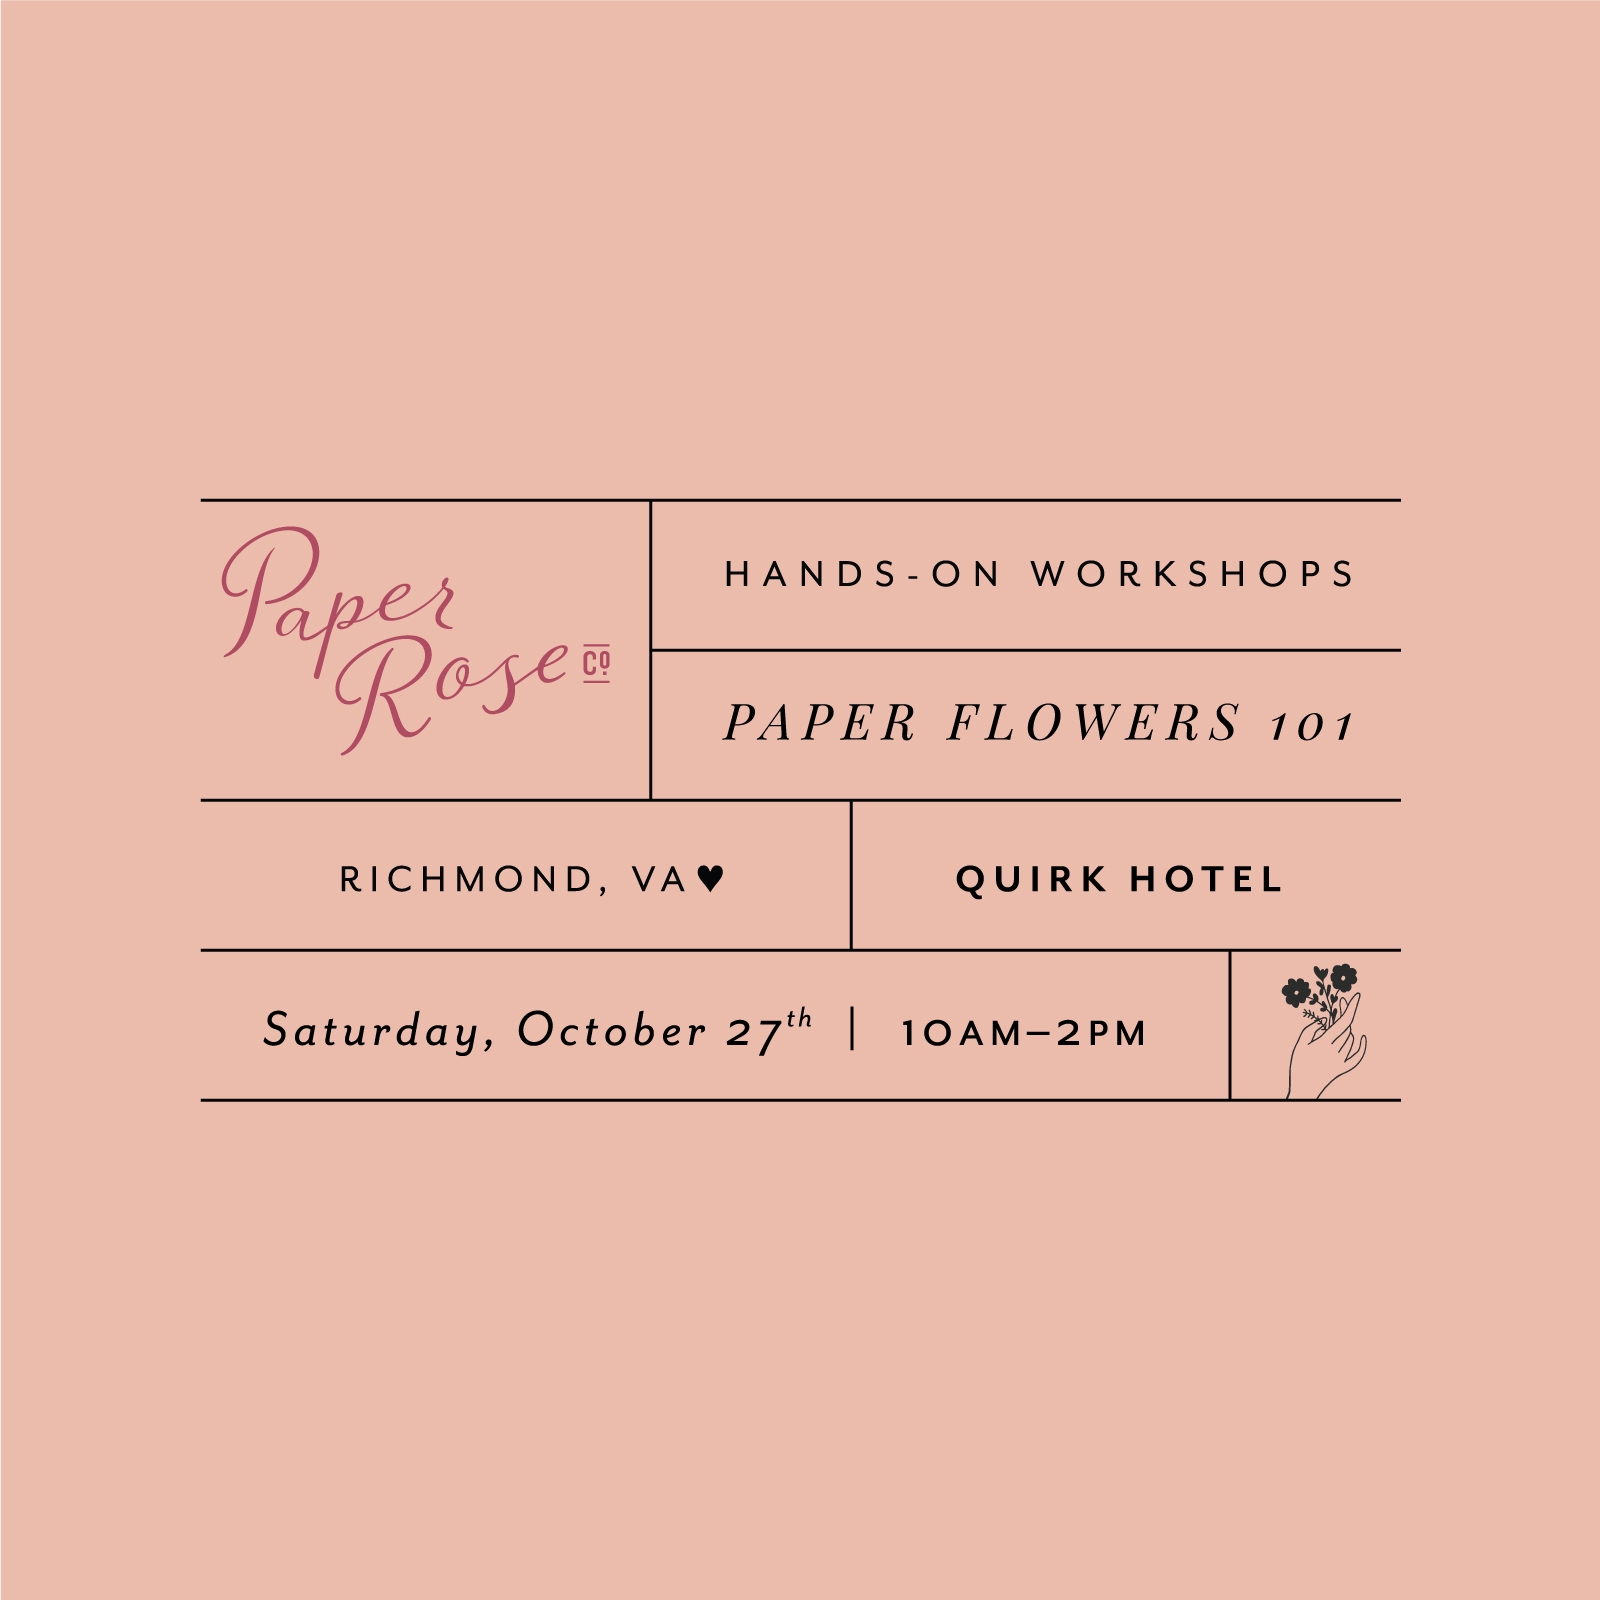 And then finally I would be remiss if not to suggest paper flowers, of course! If you're interested in learning to make paper flowers and want to sit down with me for a few hours in a couple of weeks, you can also sign up for my  Workshop in Richmond . I designed this class to be the perfect jumpstart session so that you can start successfully making flowers on your own (and start seeing the benefits I enjoyed right away too!).